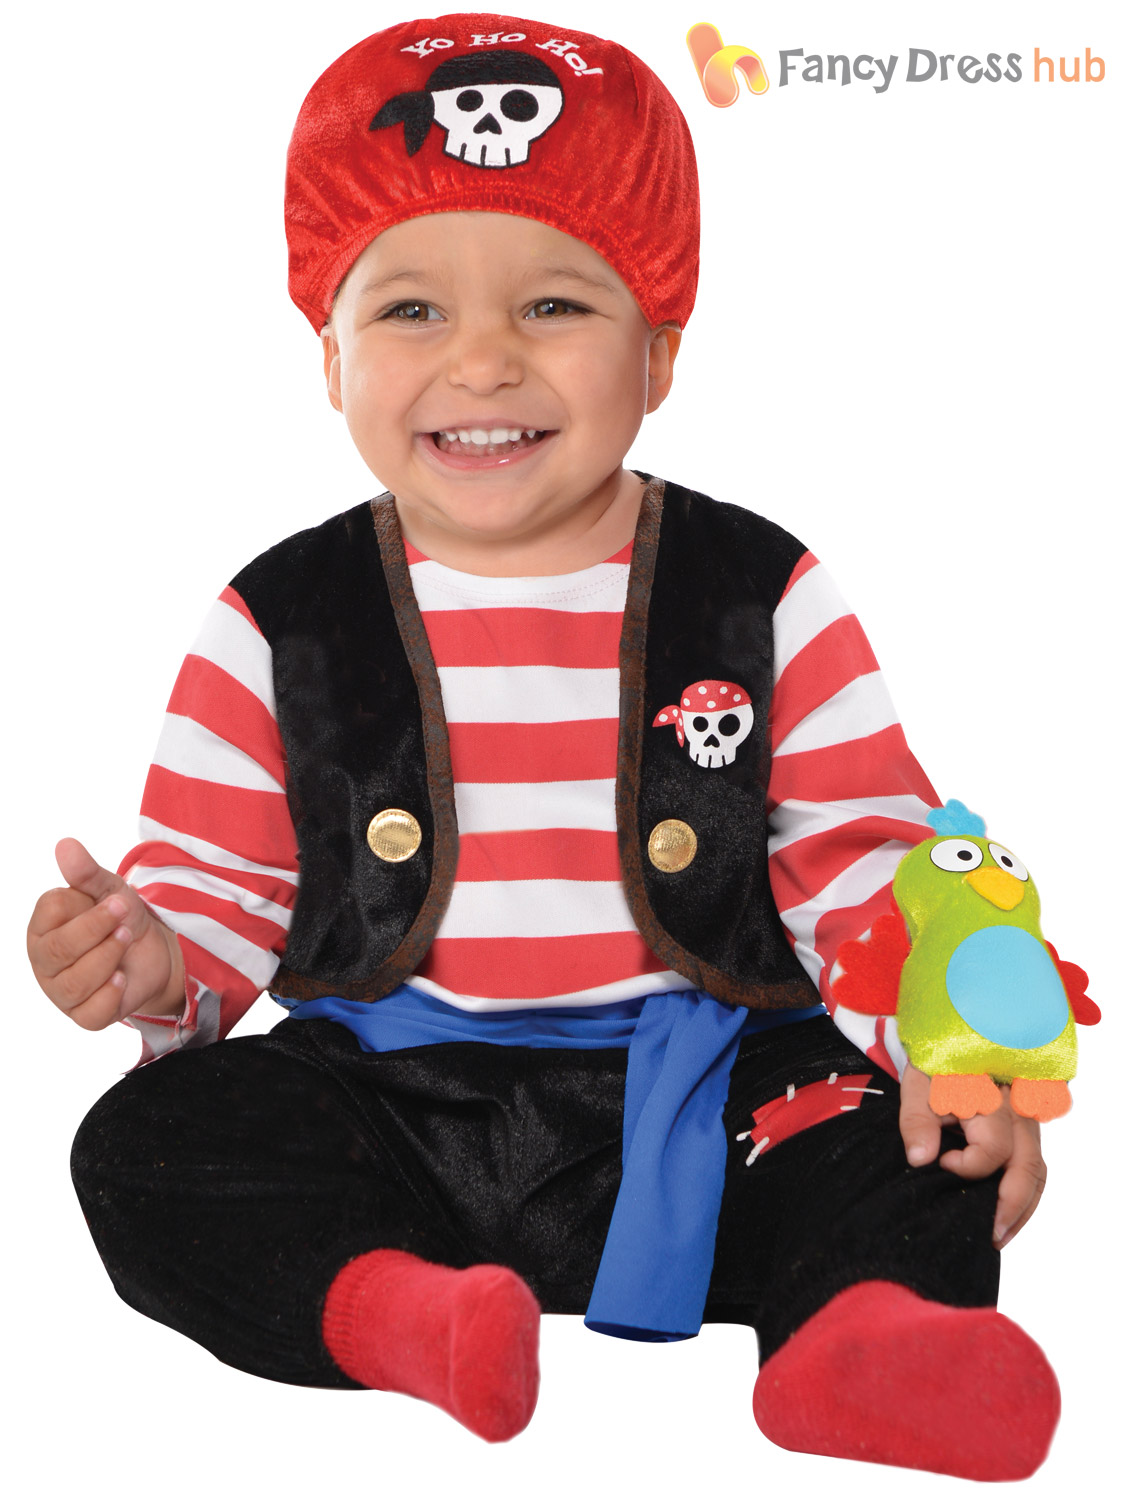 From baby buccaneers to swashbuckling Caribbean pirates, we have pirate fancy dress for all ages starting from under £10! Or if you already have your own pirate costume, we have the accessories to complete your outfit including pirate hats, eye patches, wigs and swords.